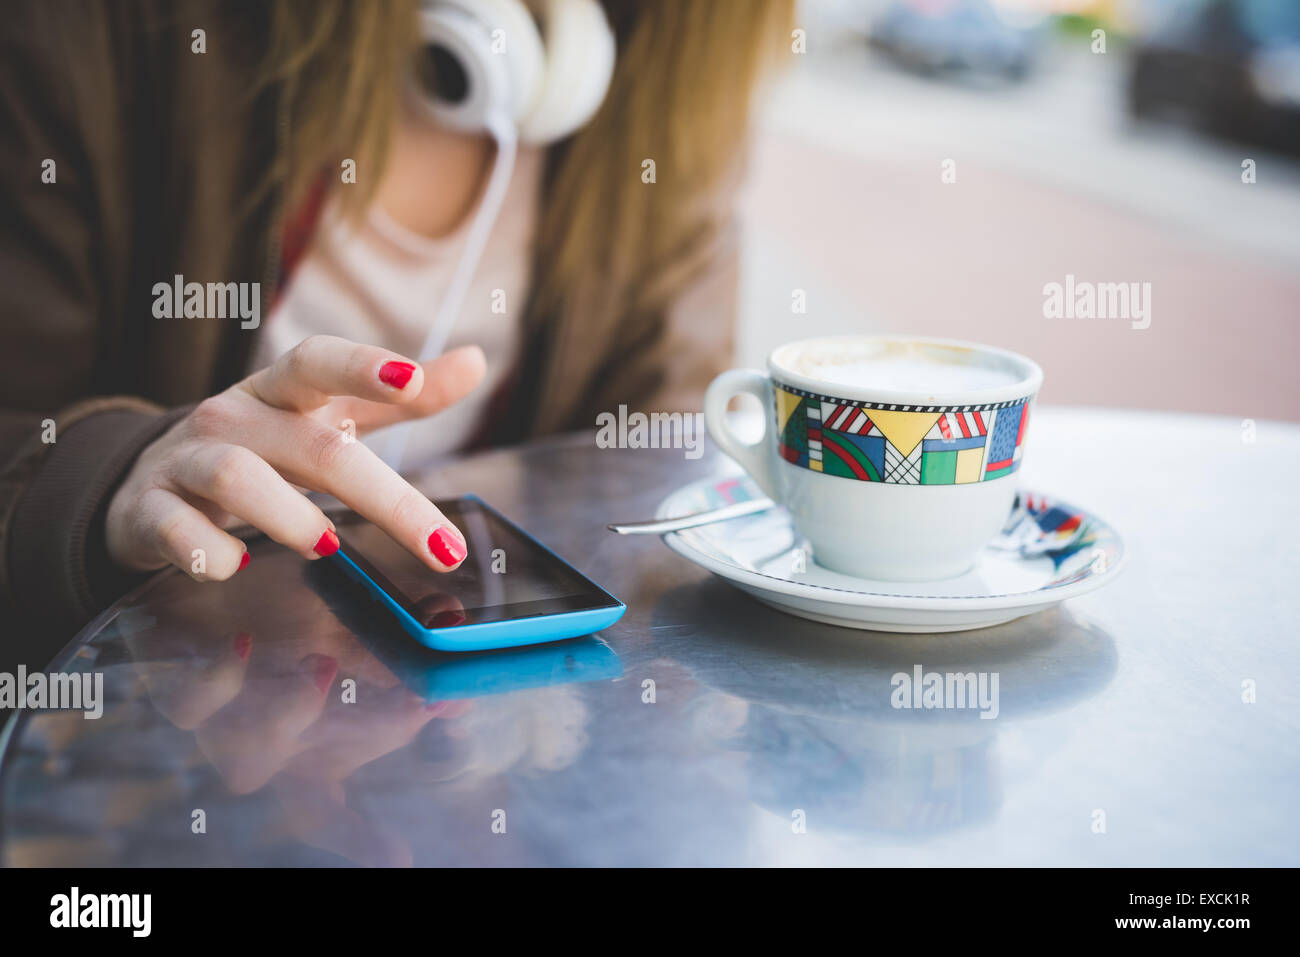 close up of woman hand using smartphone on a cafe bar table and cup of coffee - Stock Image